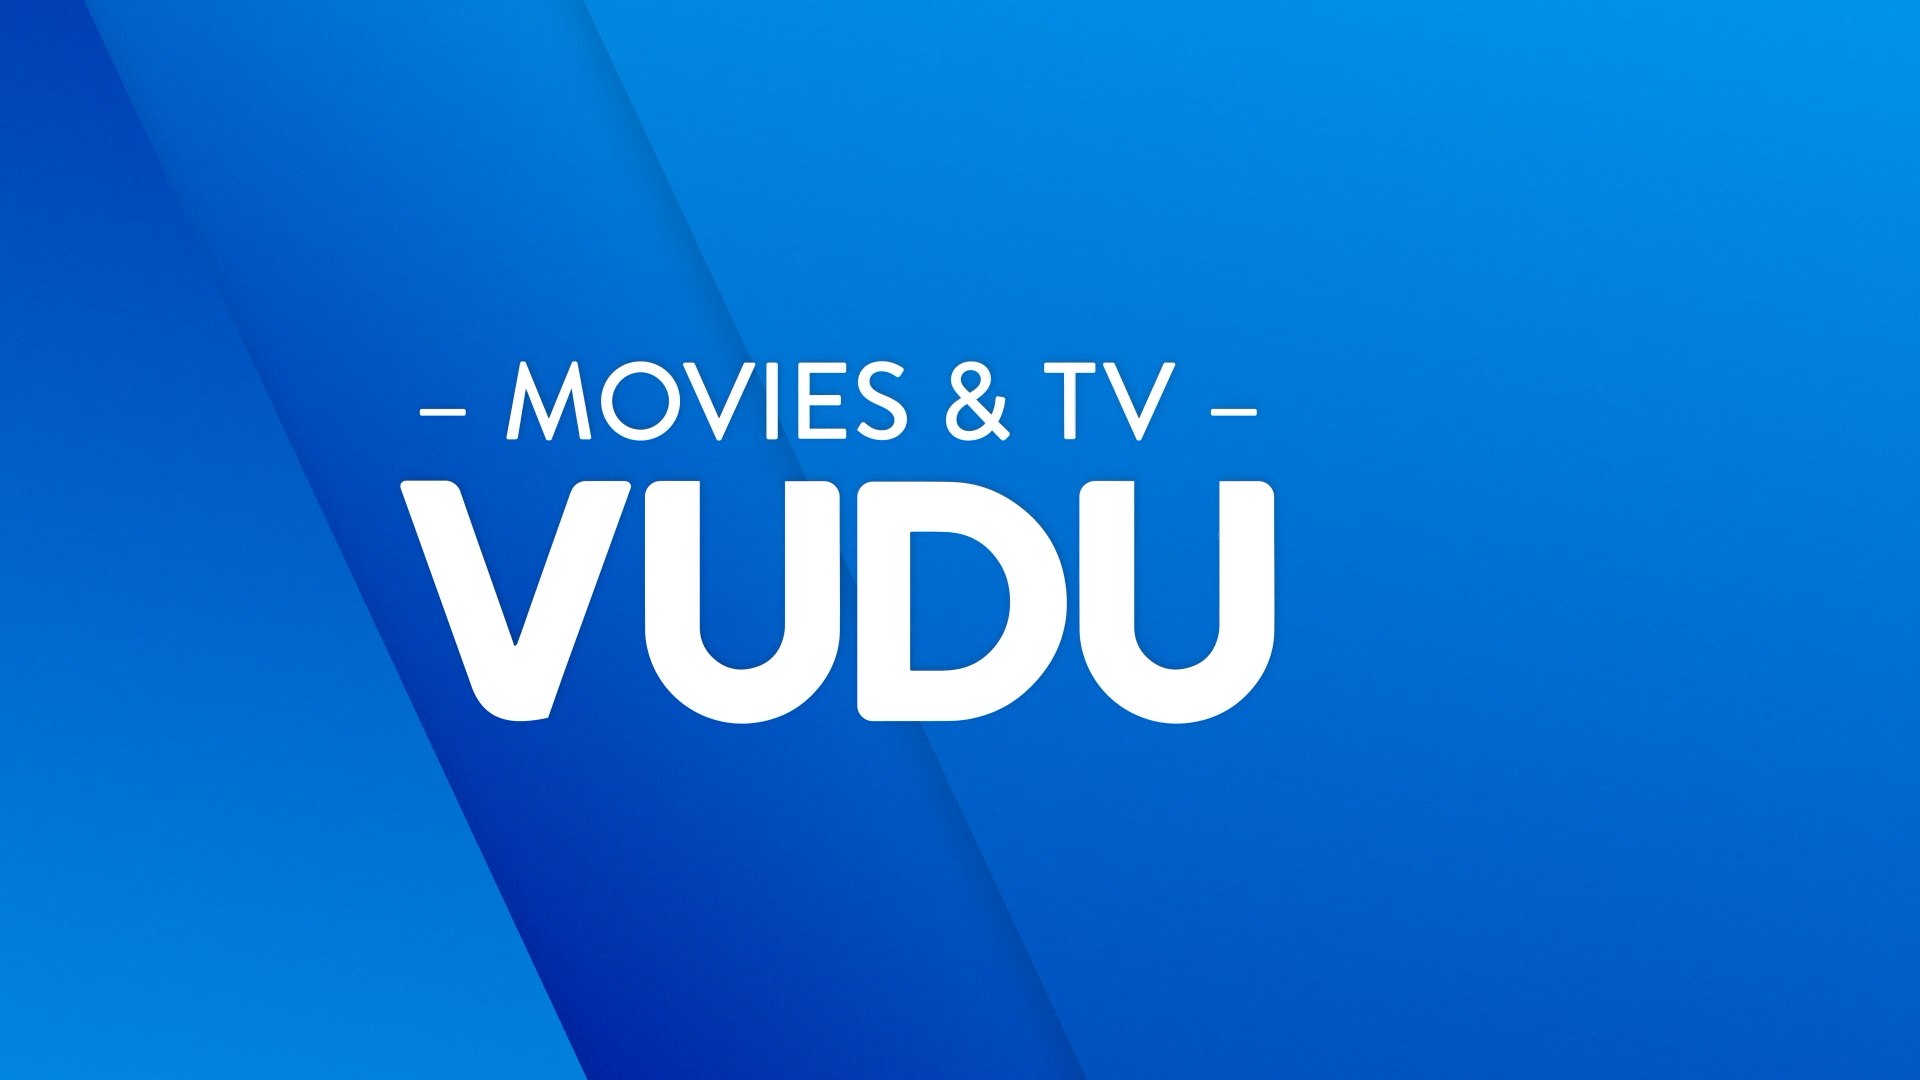 Walmart's Vudu Streaming Service Adds a New Kids Mode With